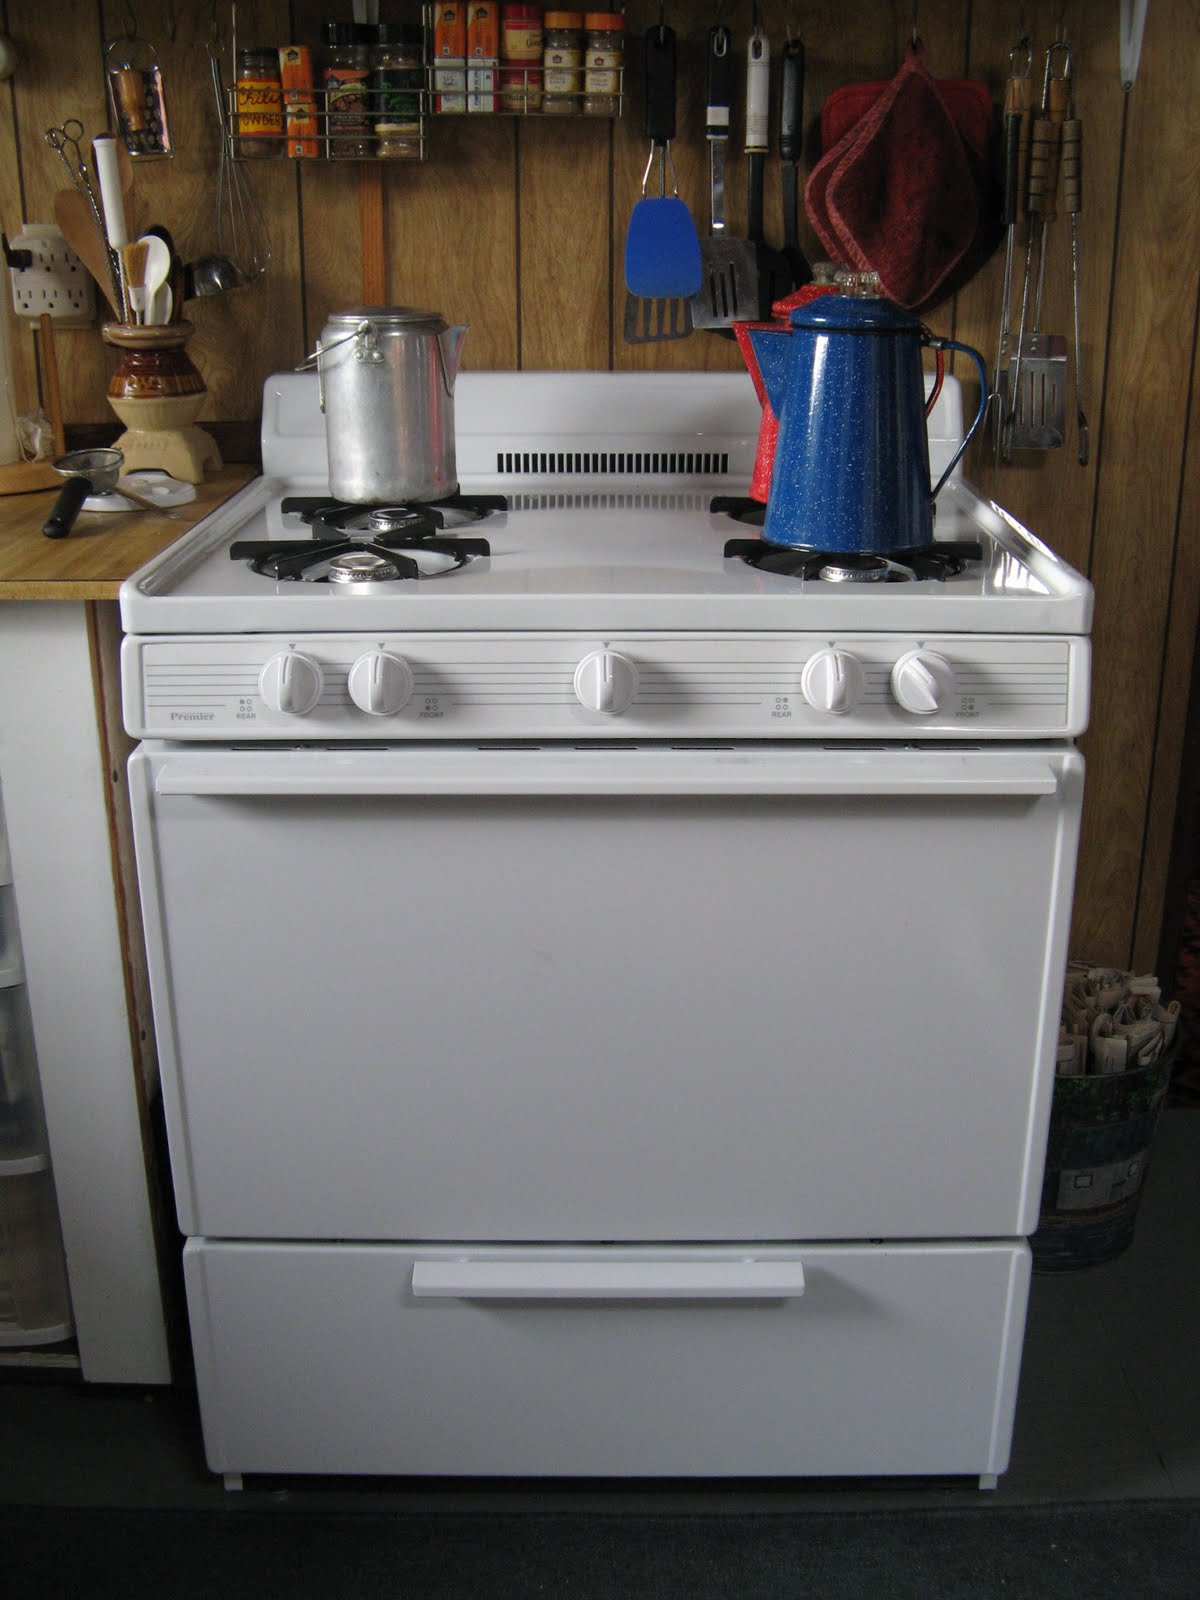 propane range hookup Shop for ge ranges and explore our options for a gas range, an electric range, and induction cooking plus read range buying tips, watch range videoes and more.